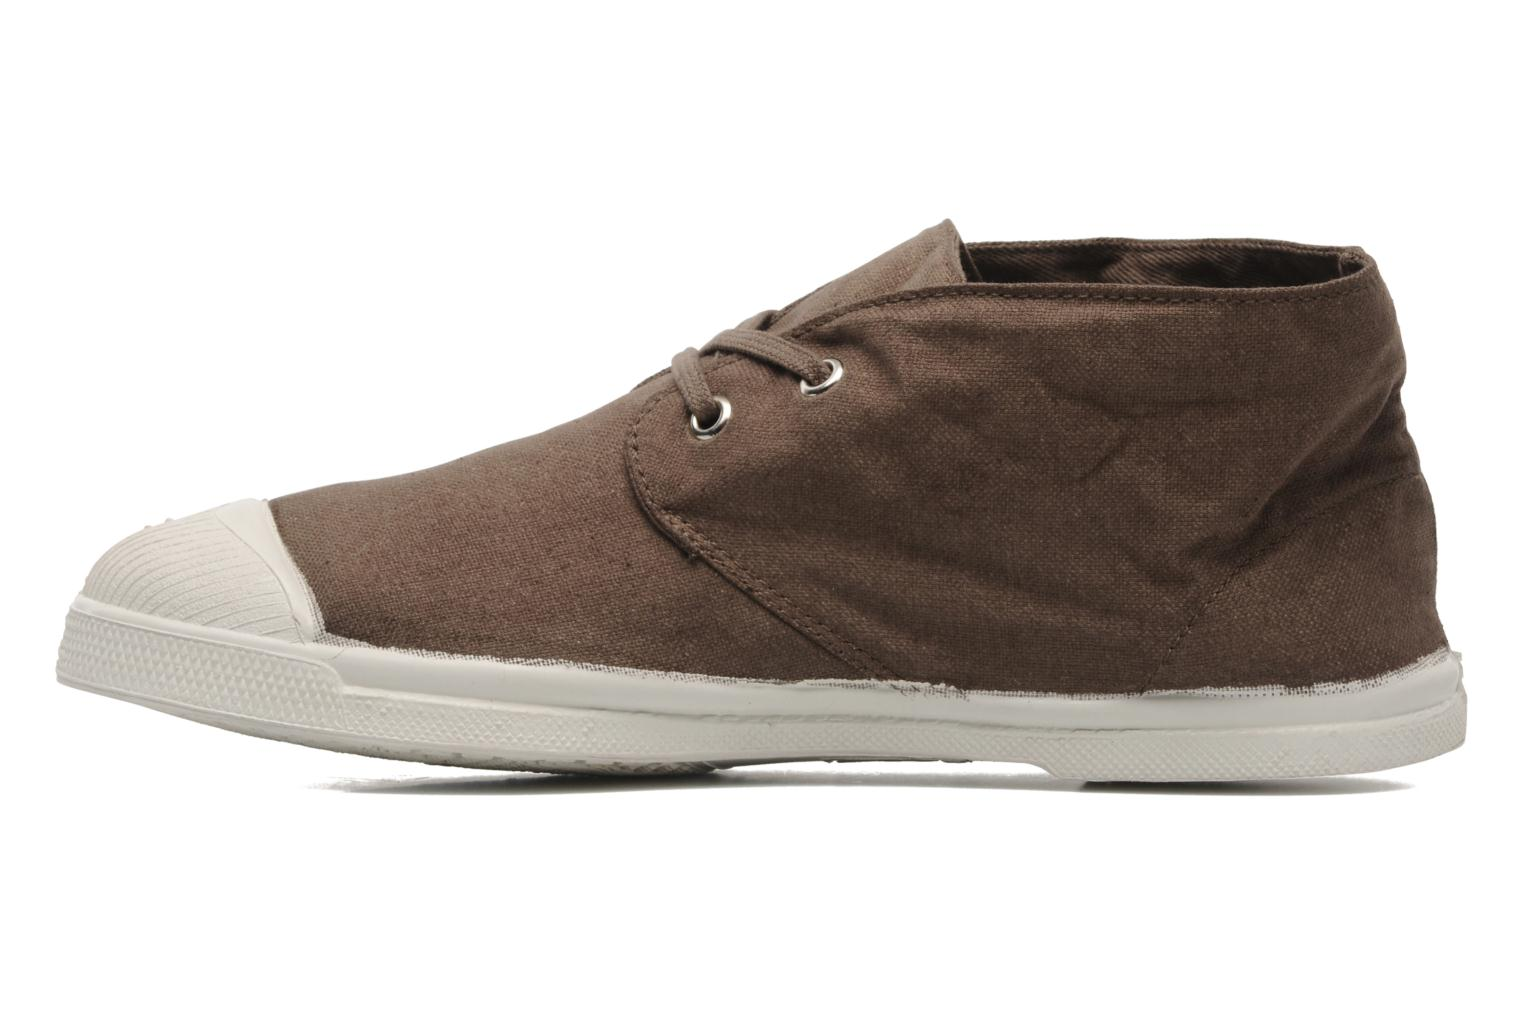 Baskets Bensimon Nils h Marron vue face